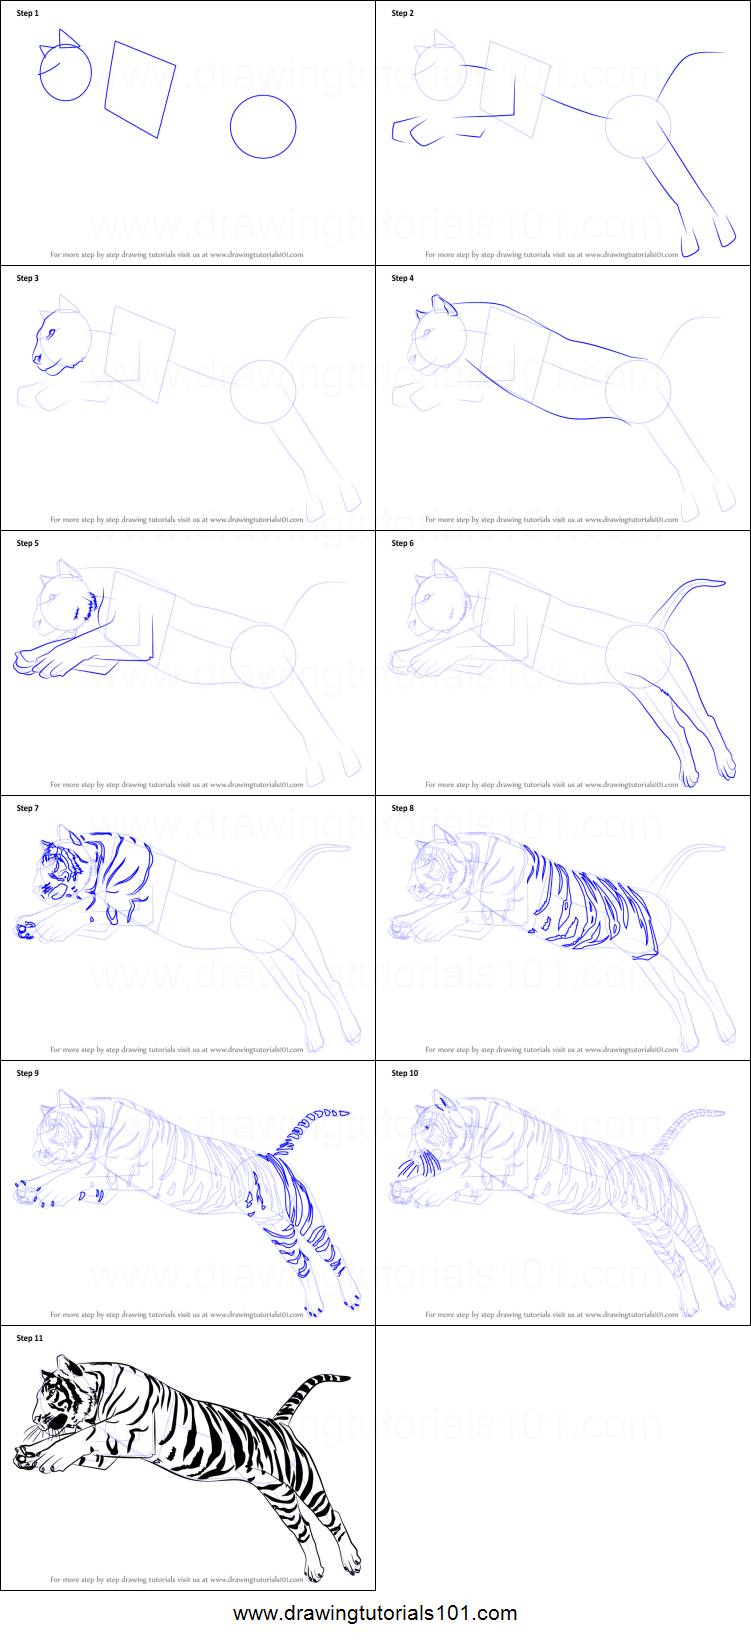 Uncategorized How To Draw A Tiger Step By Step how to draw a tiger jumping printable step by drawing sheet drawingtutorials101 com